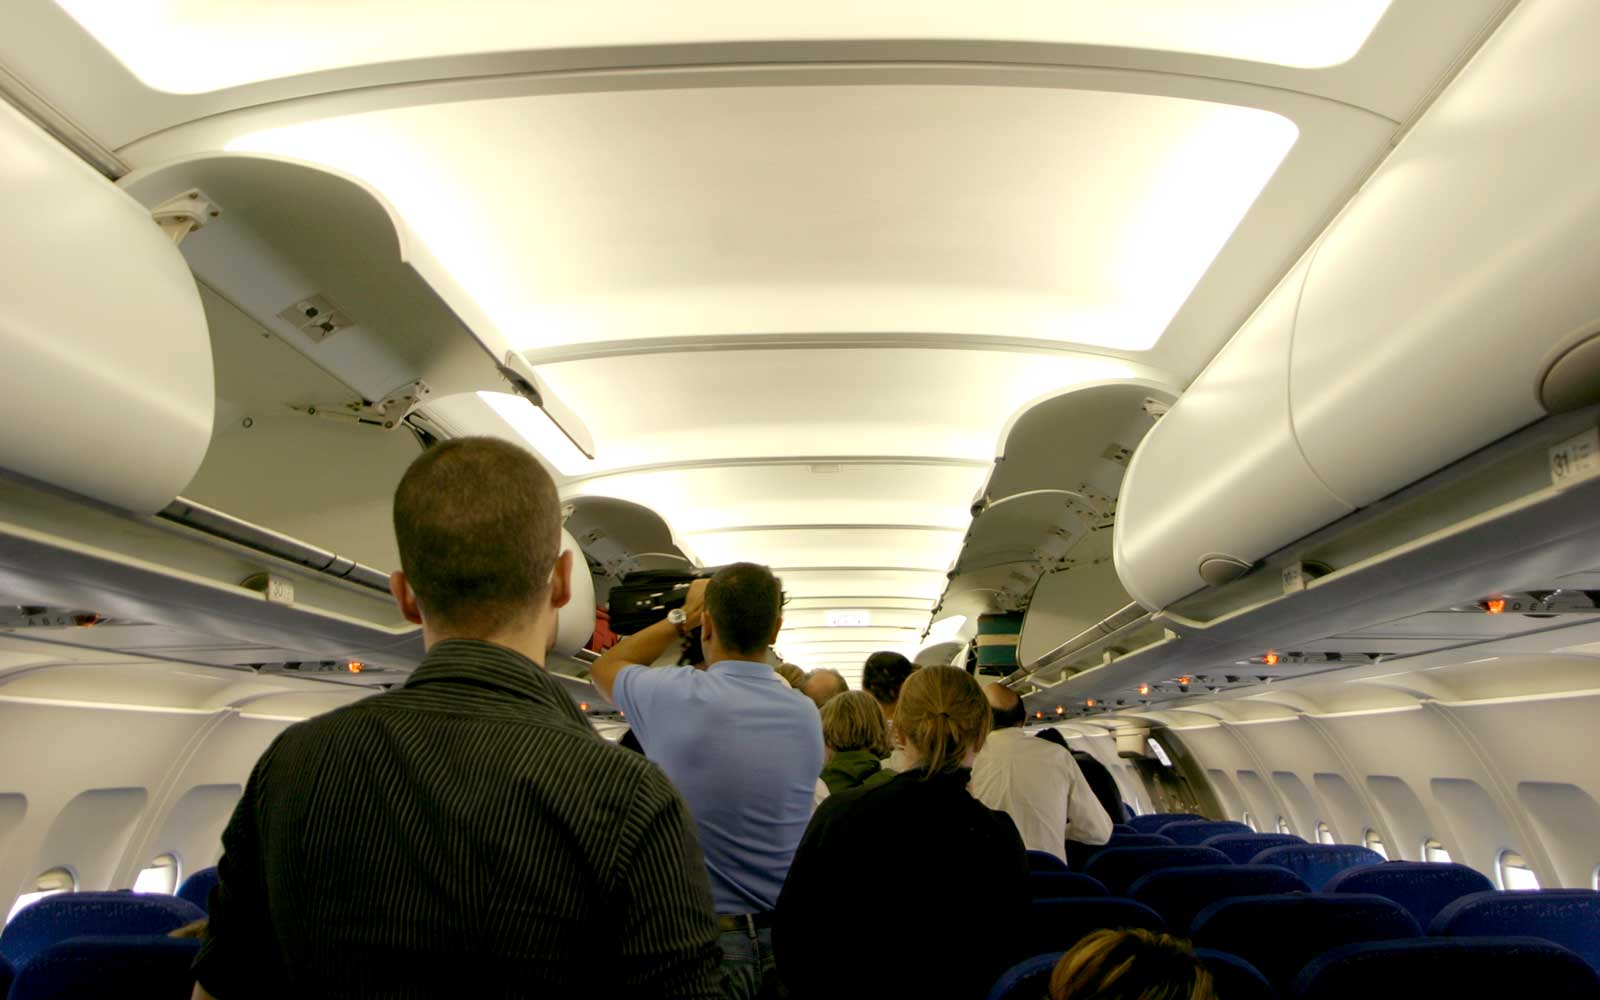 This Flight Attendant's Video Is Proof That People Can Exit a Plane in a Calm and Orderly Fashion